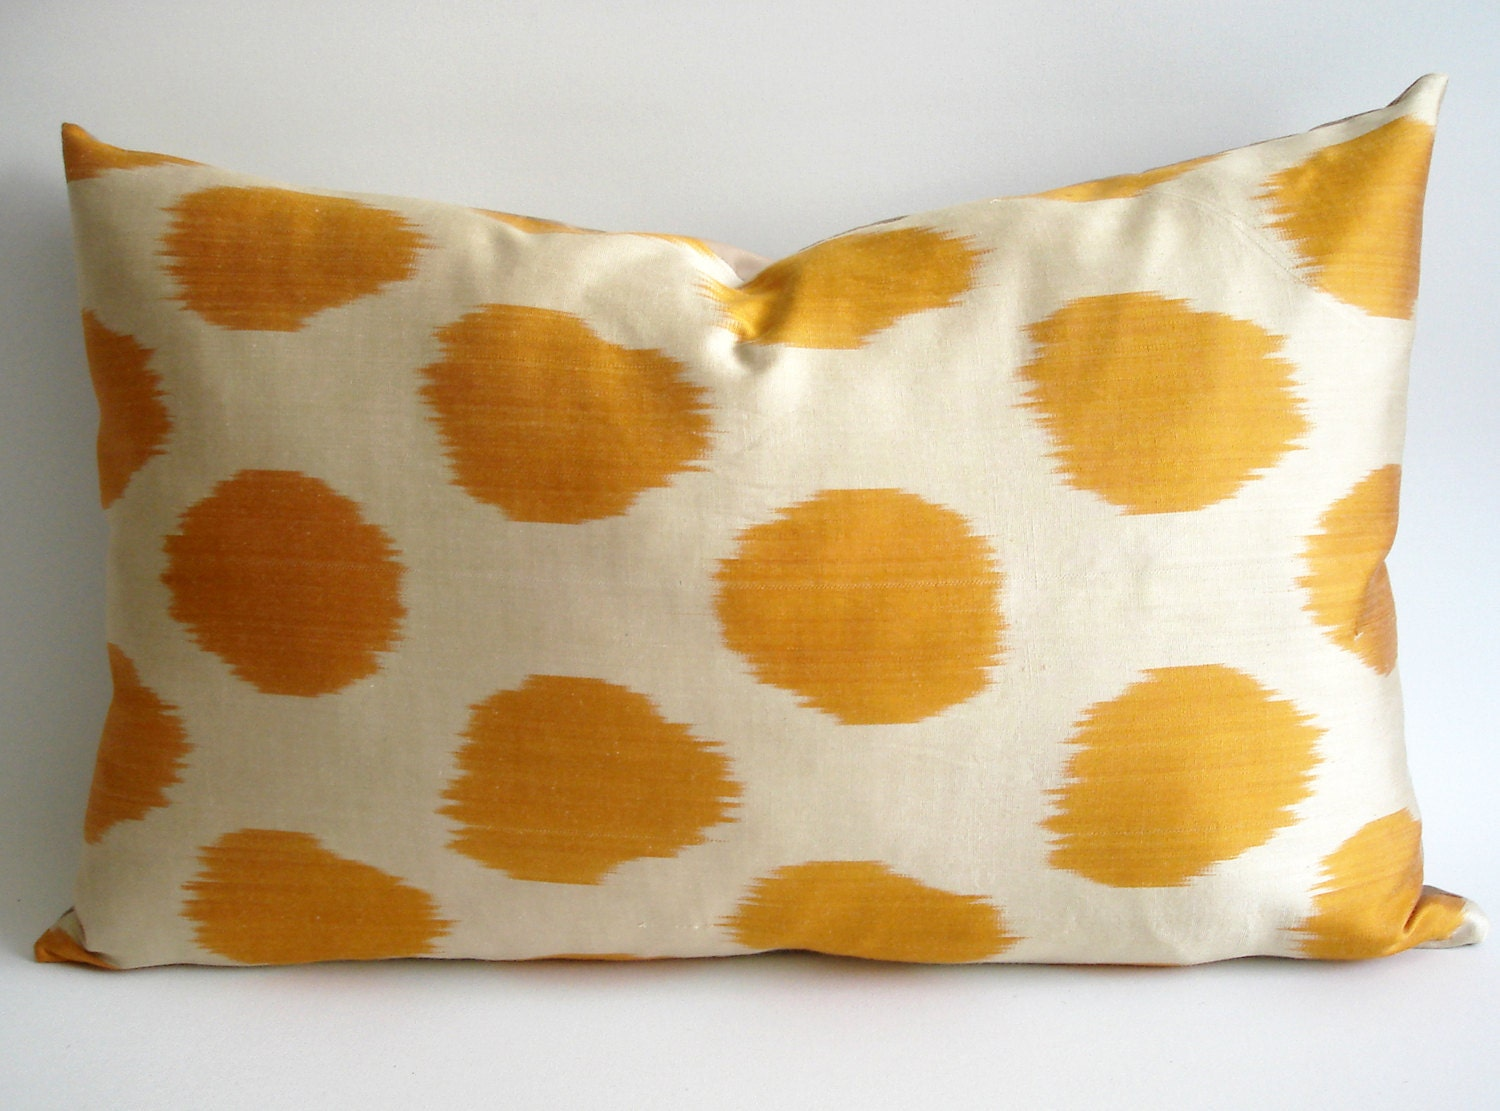 Sukan / Decorative Ikat Throw Pillow Cover, Accent Pillow, Decorative Cushion, Decorative Ikat Throw Pillow Cover, Yellow, Ivory Color